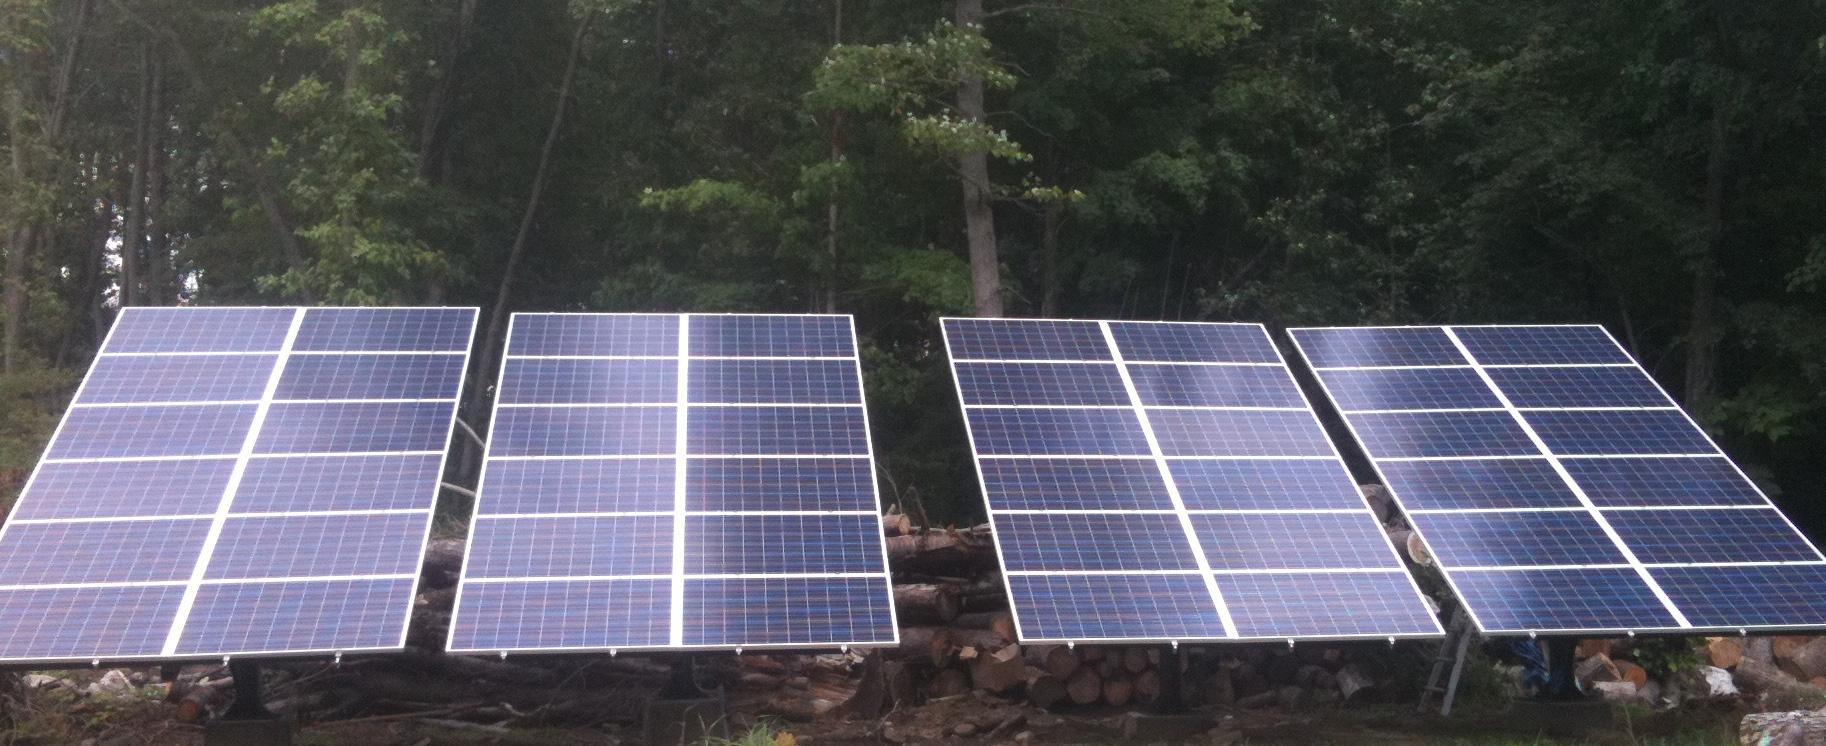 Shippee Solar And Construction Llc Profile And Reviews